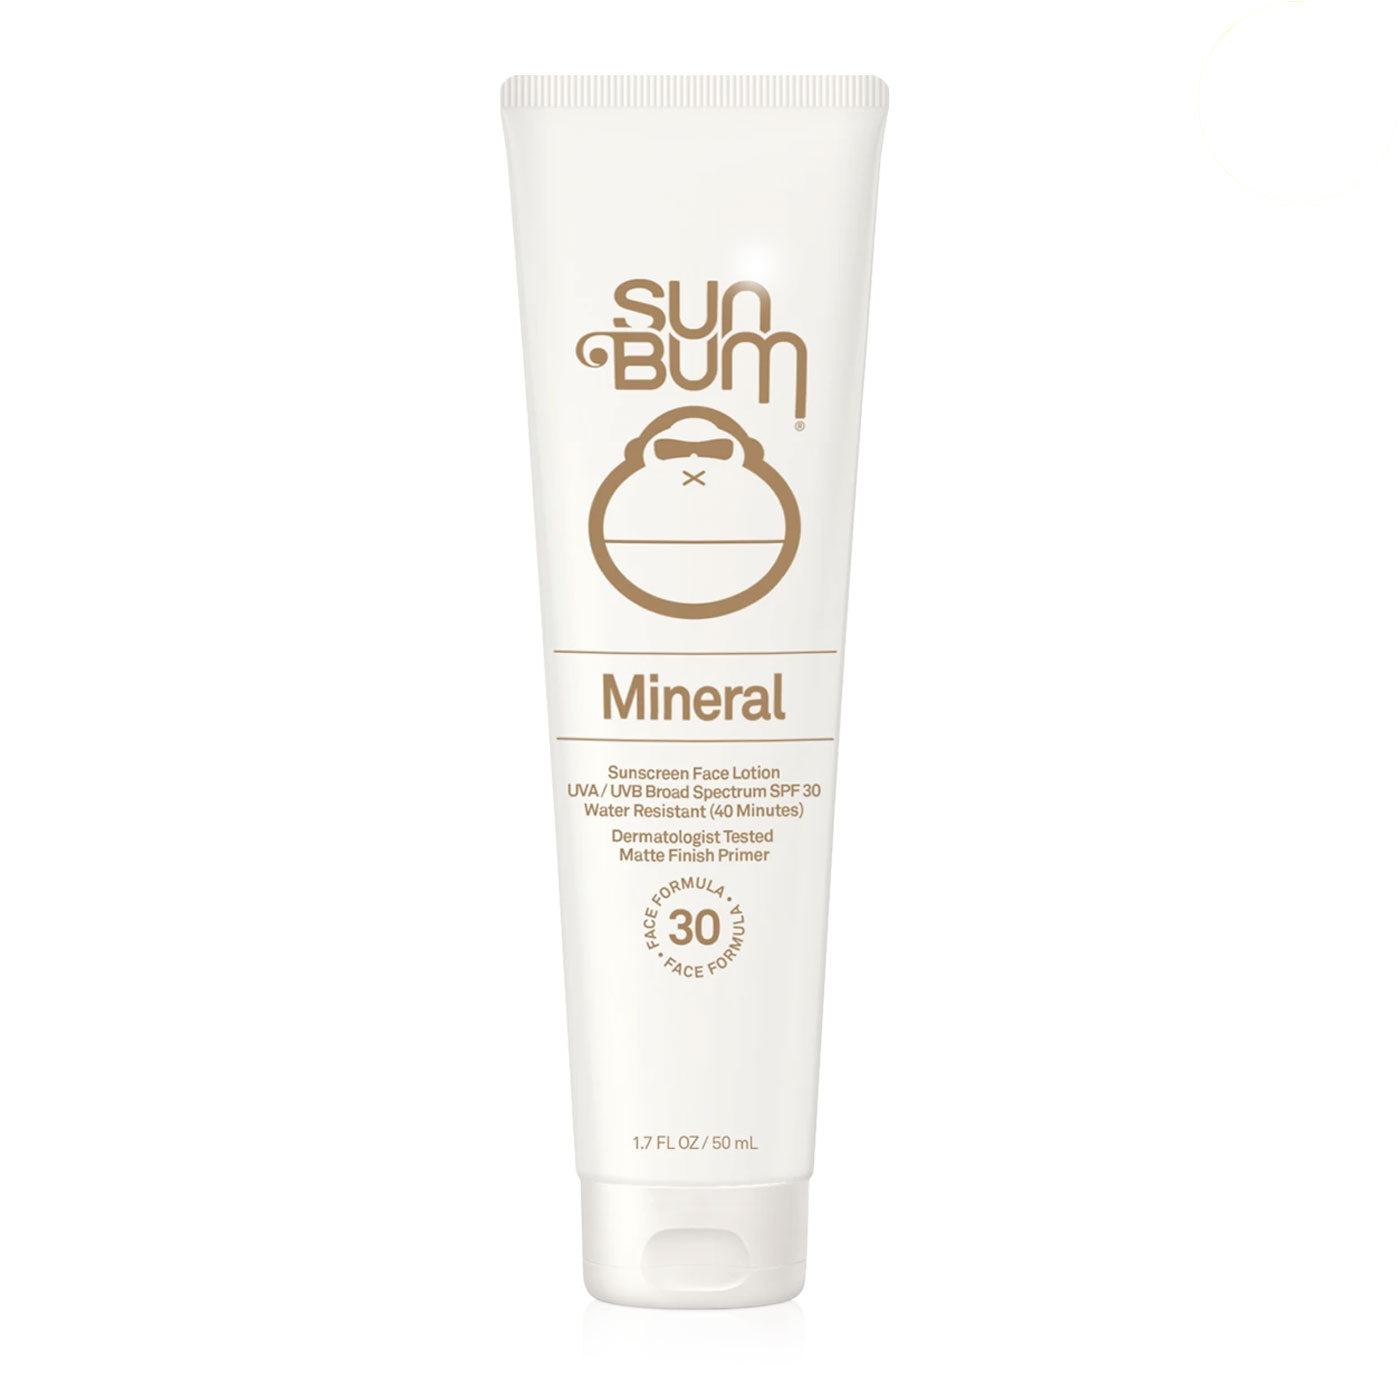 Sun Bum Mineral Sunscreen Face Lotion - SPF 30